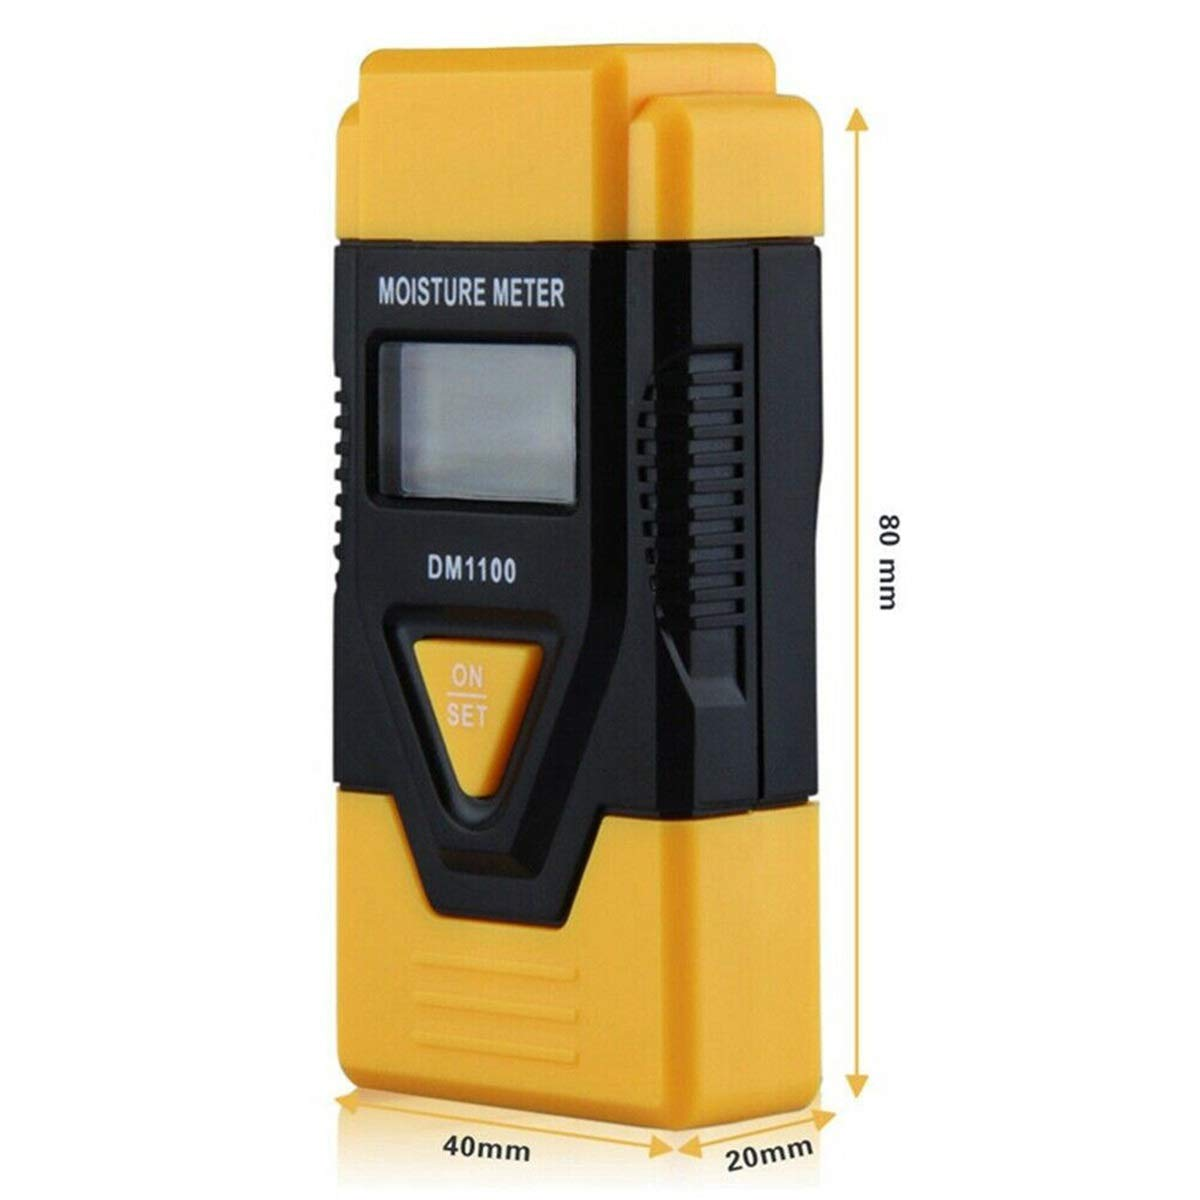 Jinxuny 3-in-1 Moisture Meter Digital LCD Damp Moisture Meter Tester Compact Size Portable for Wood Timber Plaster Logs Thermometer